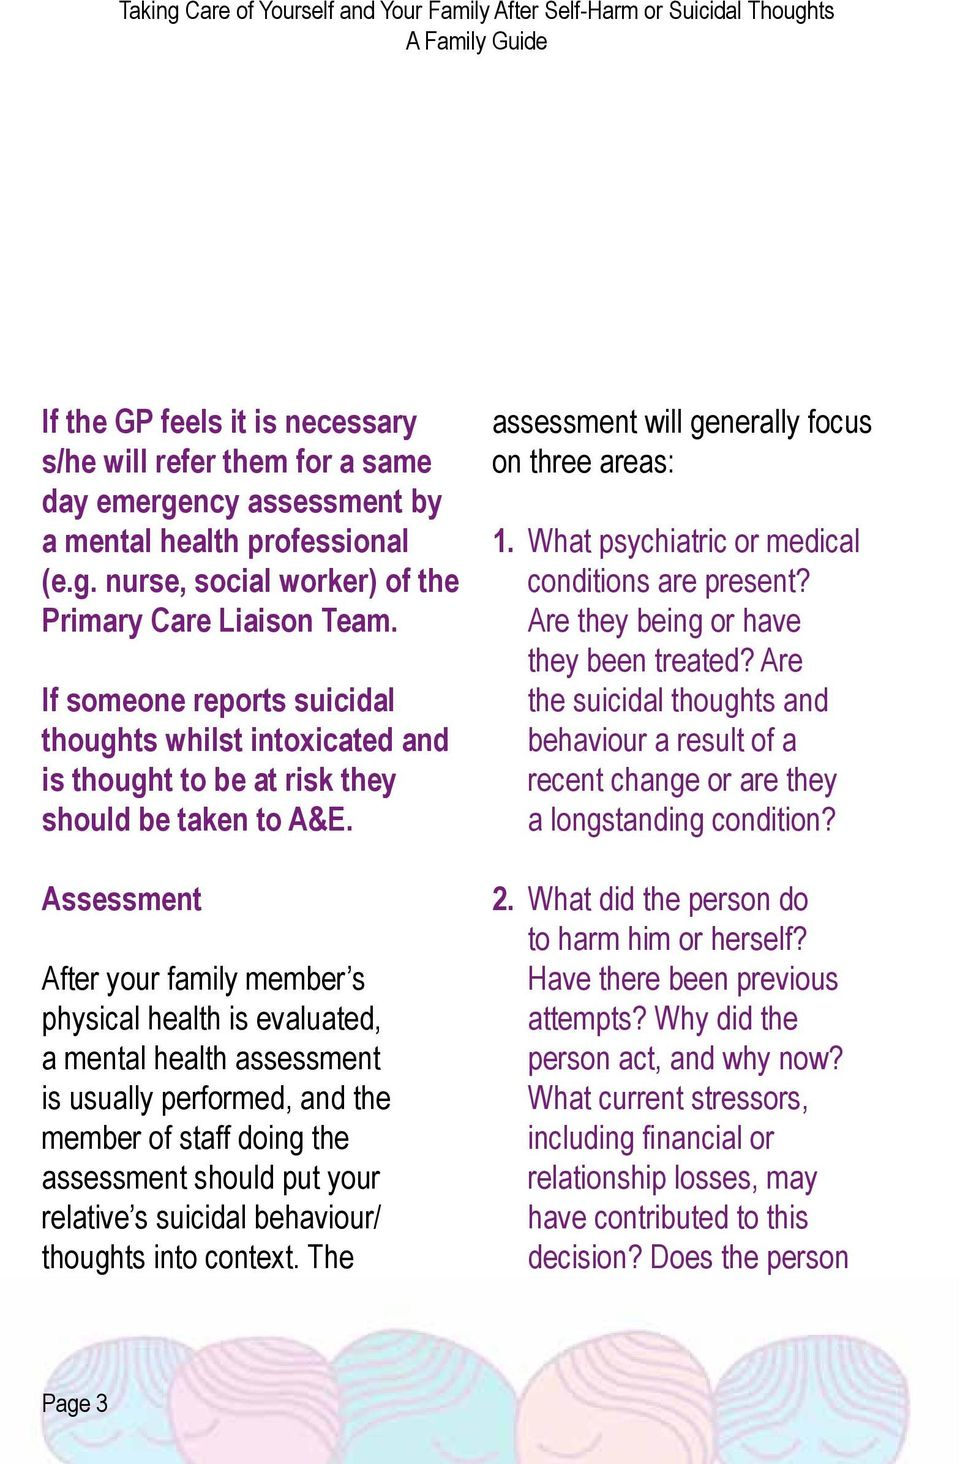 Assessment After your family member s physical health is evaluated, a mental health assessment is usually performed, and the member of staff doing the assessment should put your relative s suicidal